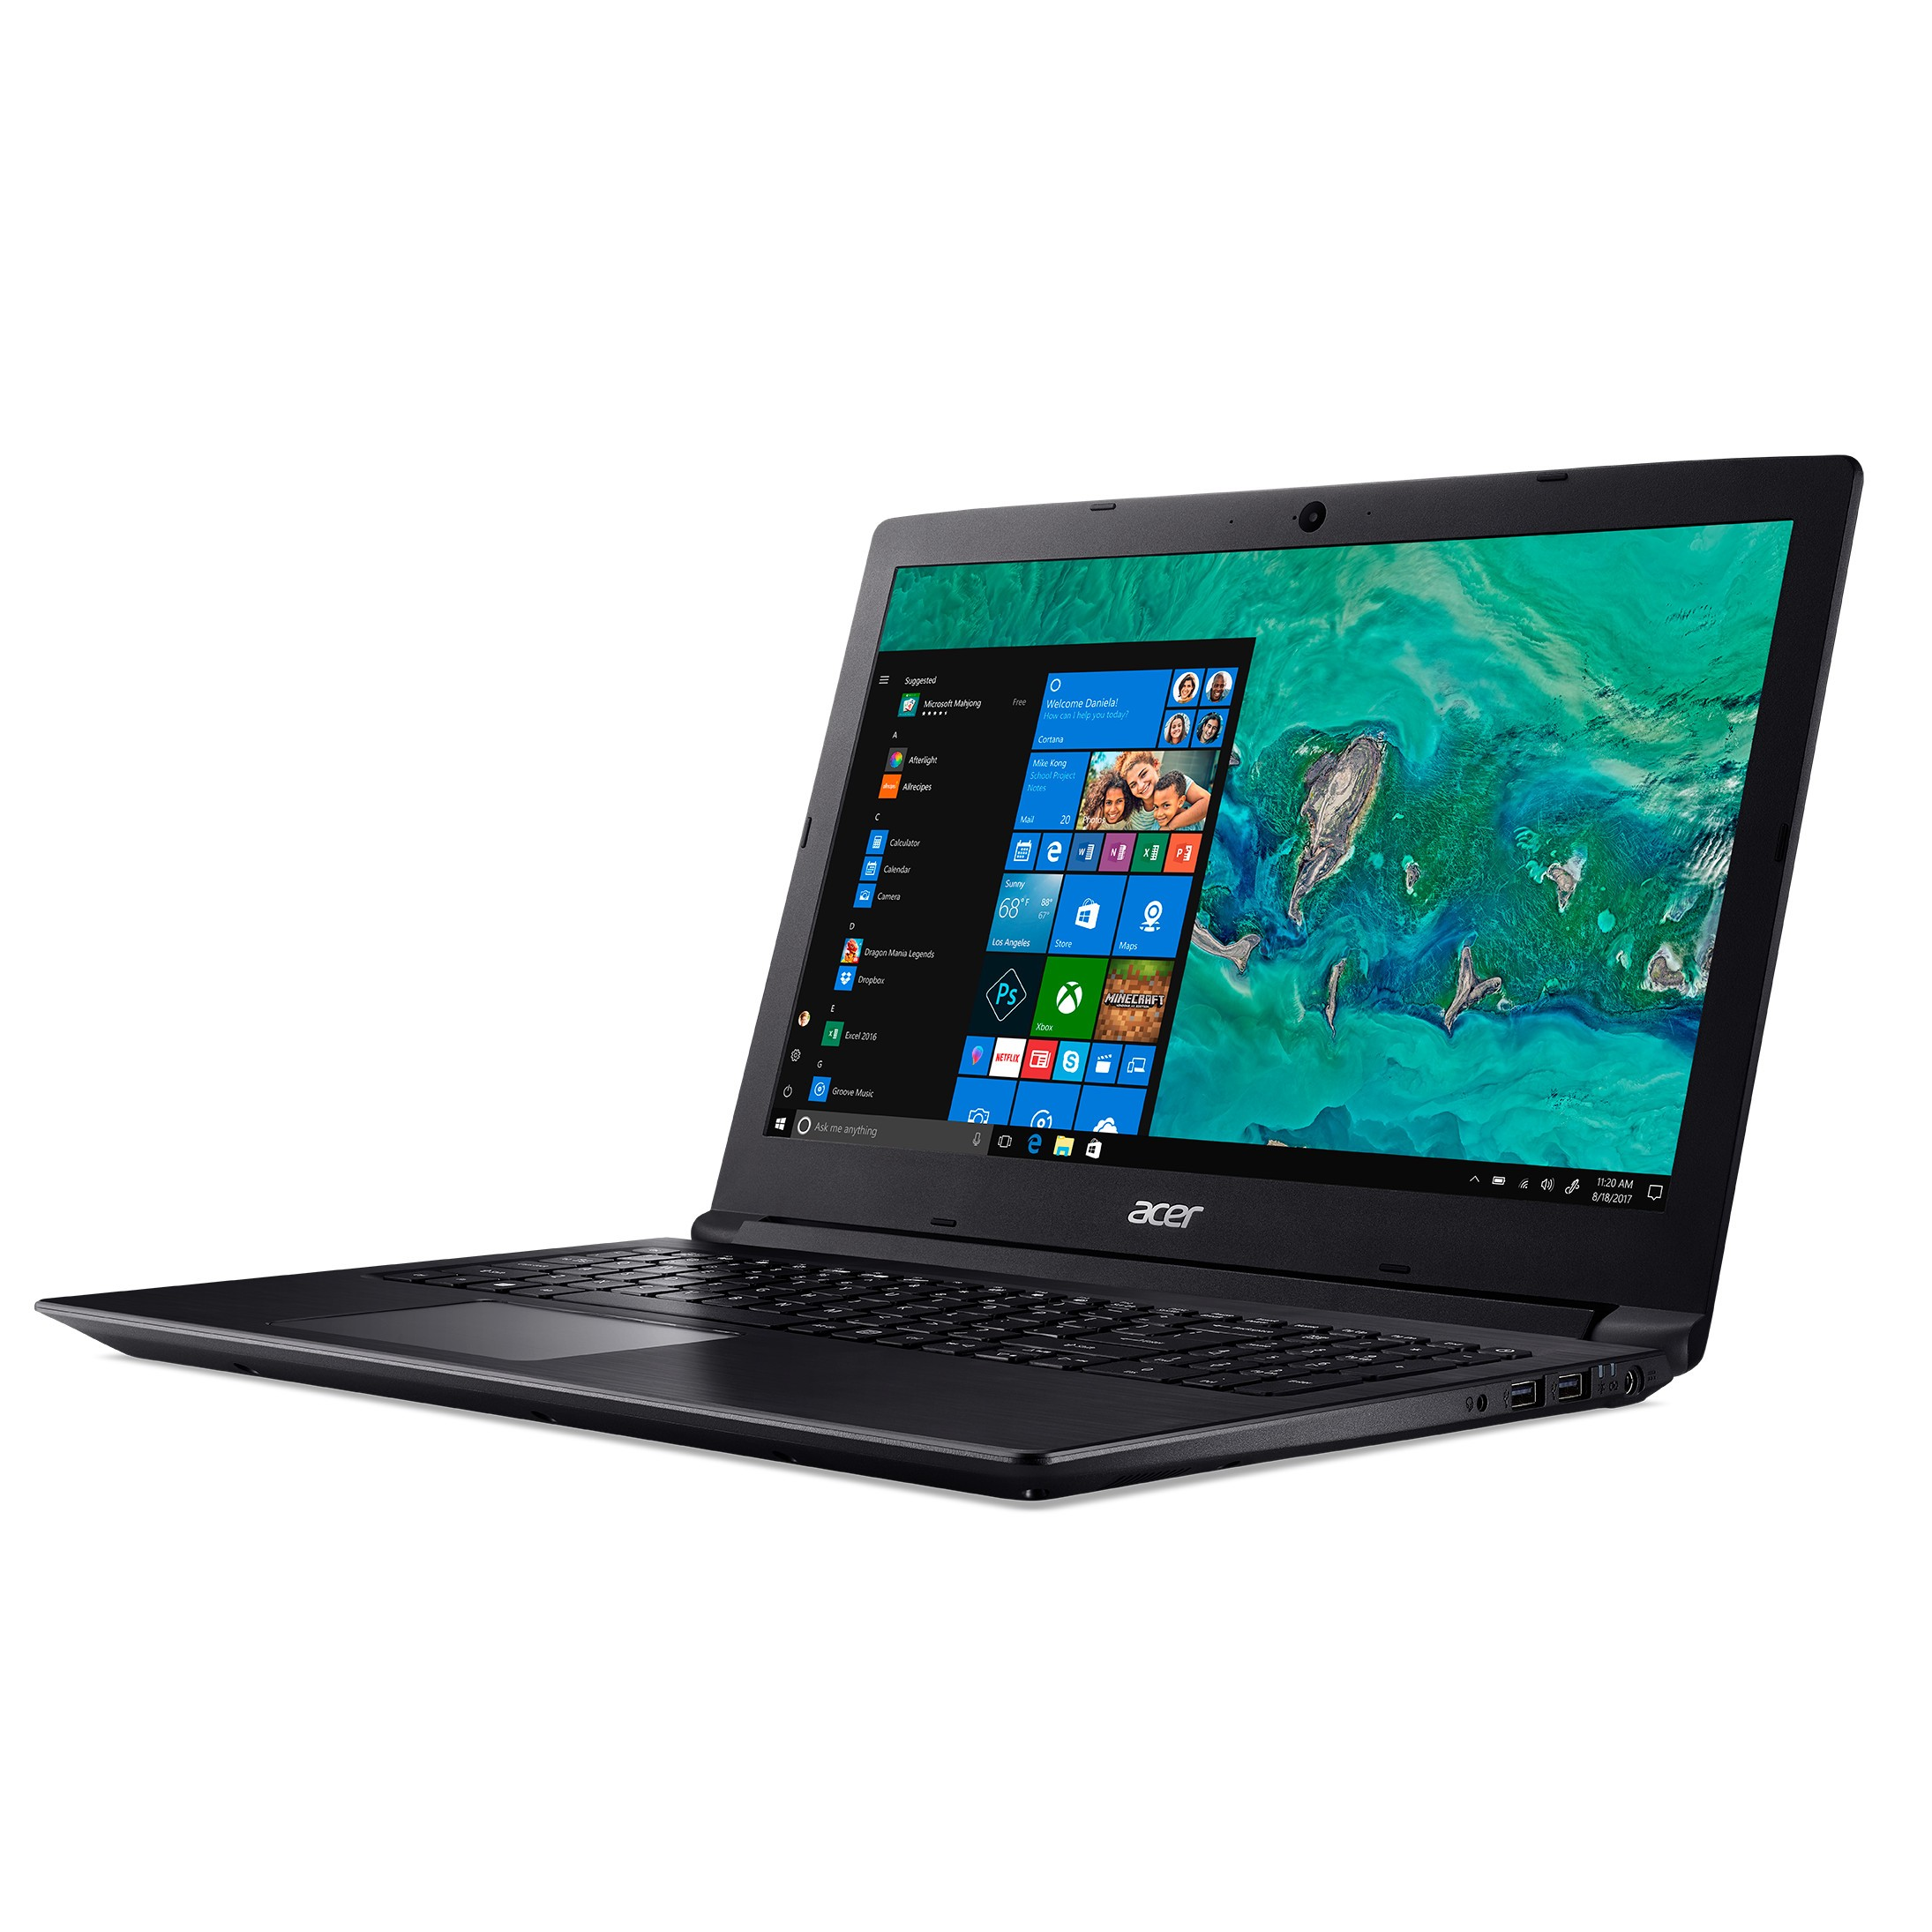 "Ordenador Port Acer Aspire 3 A315-53-3328 15.6"" Hd Intel Core I3-7020u"